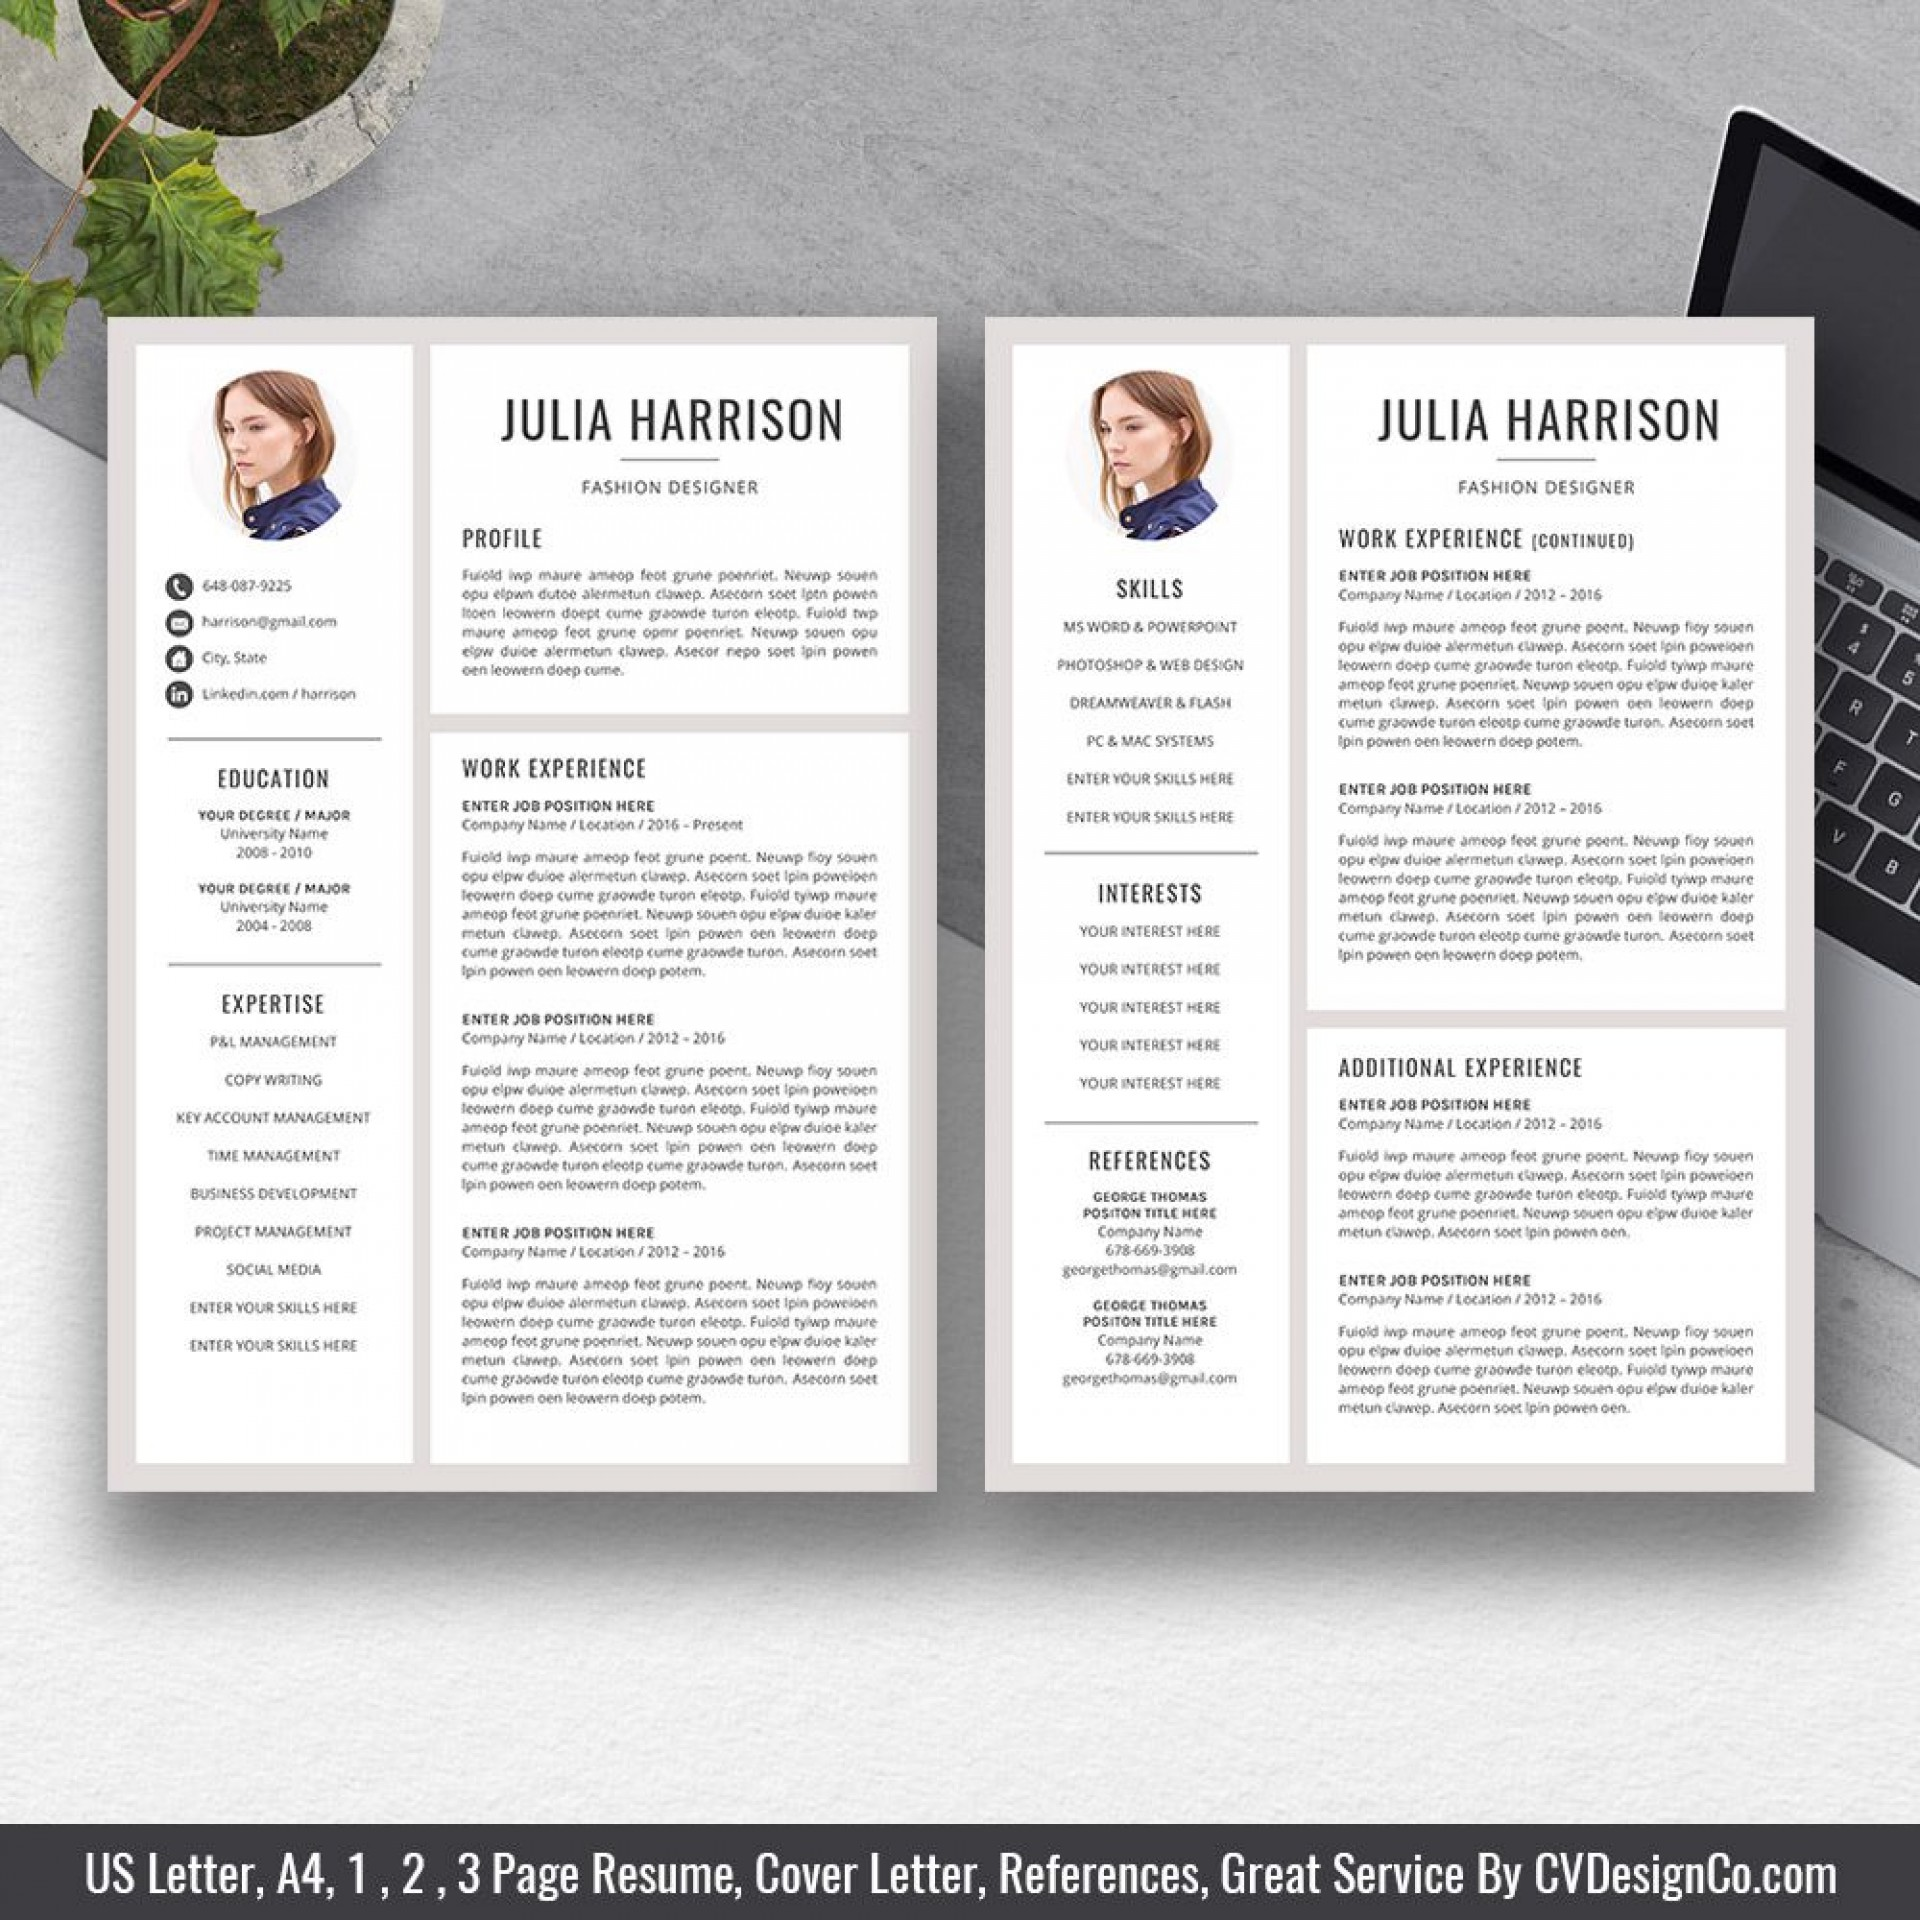 004 Awful Best Resume Template 2016 Sample 1920